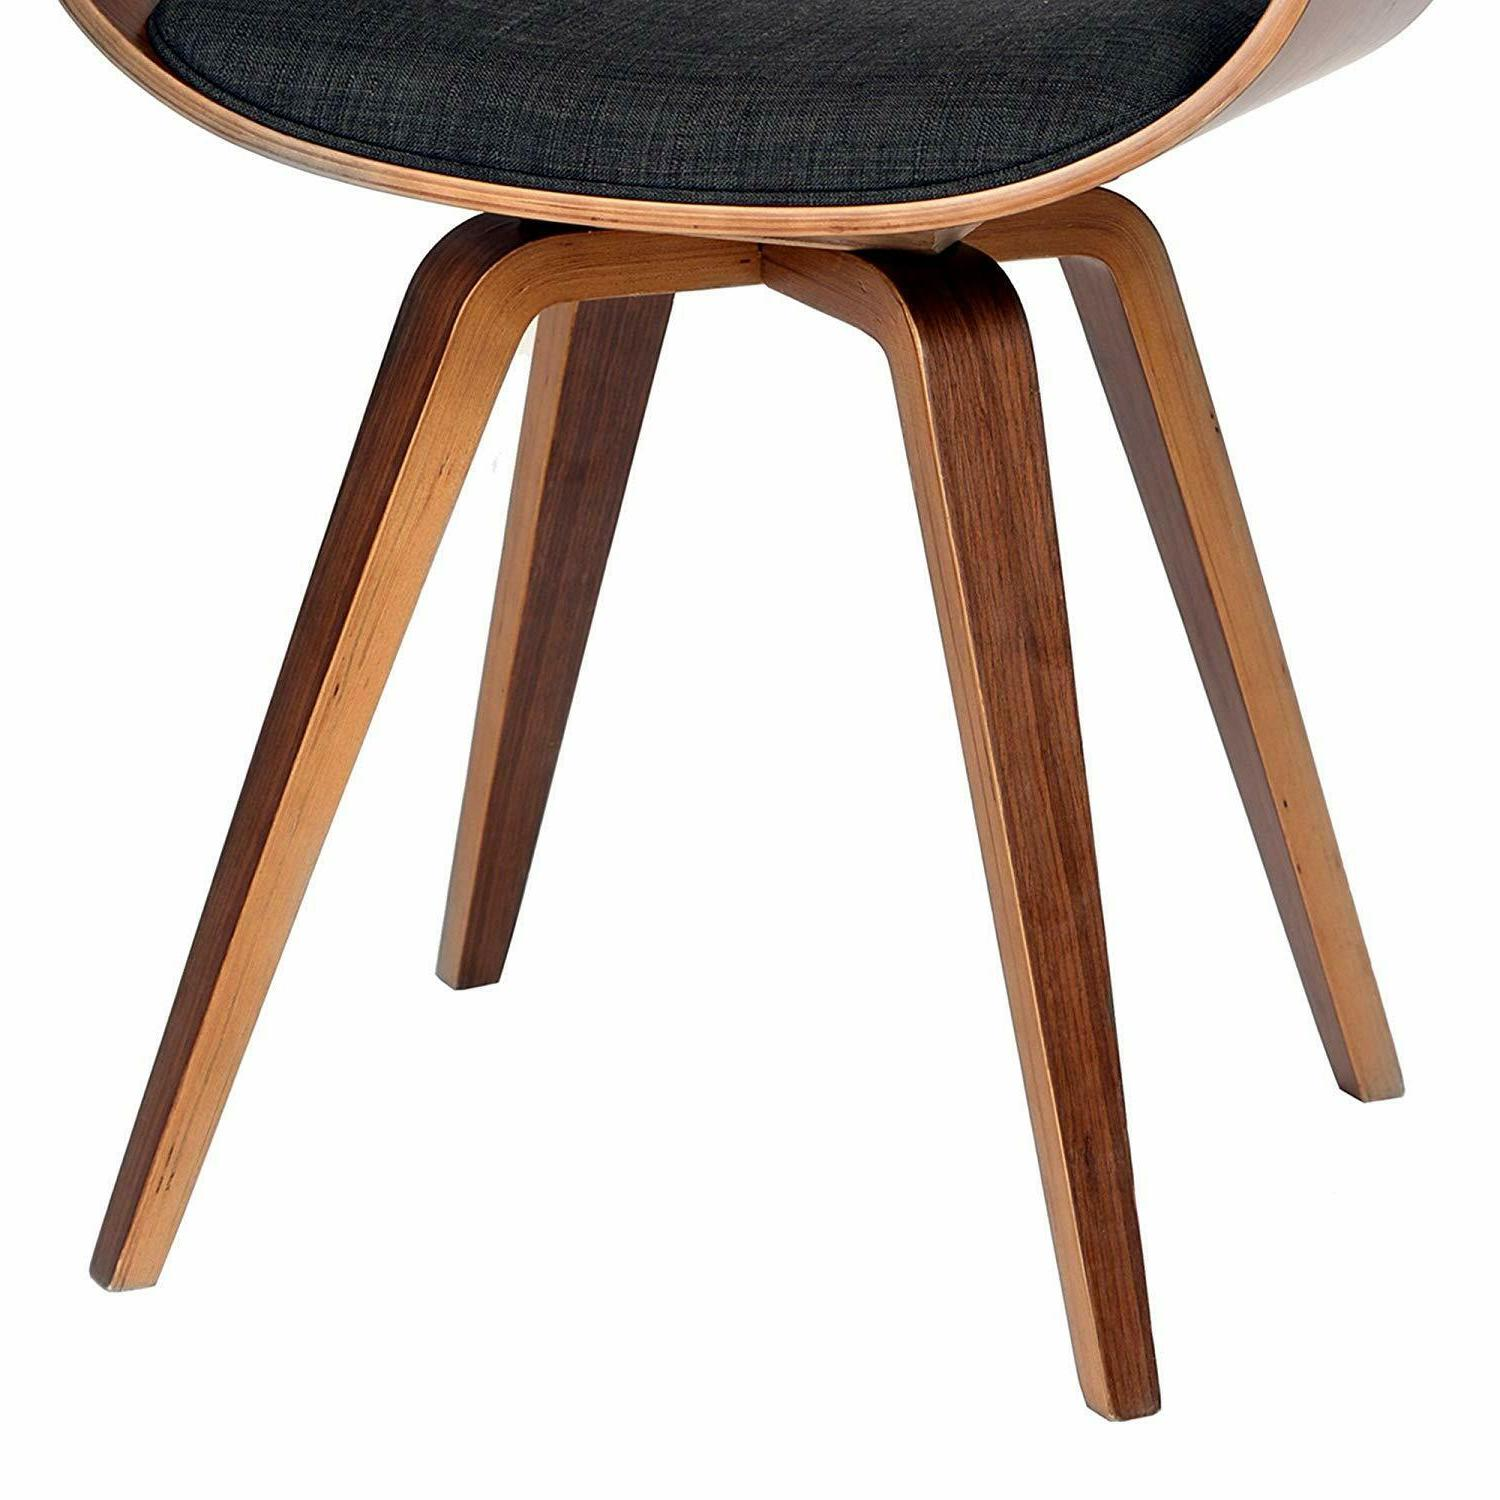 Armen Summer Chair in Charcoal and Walnut